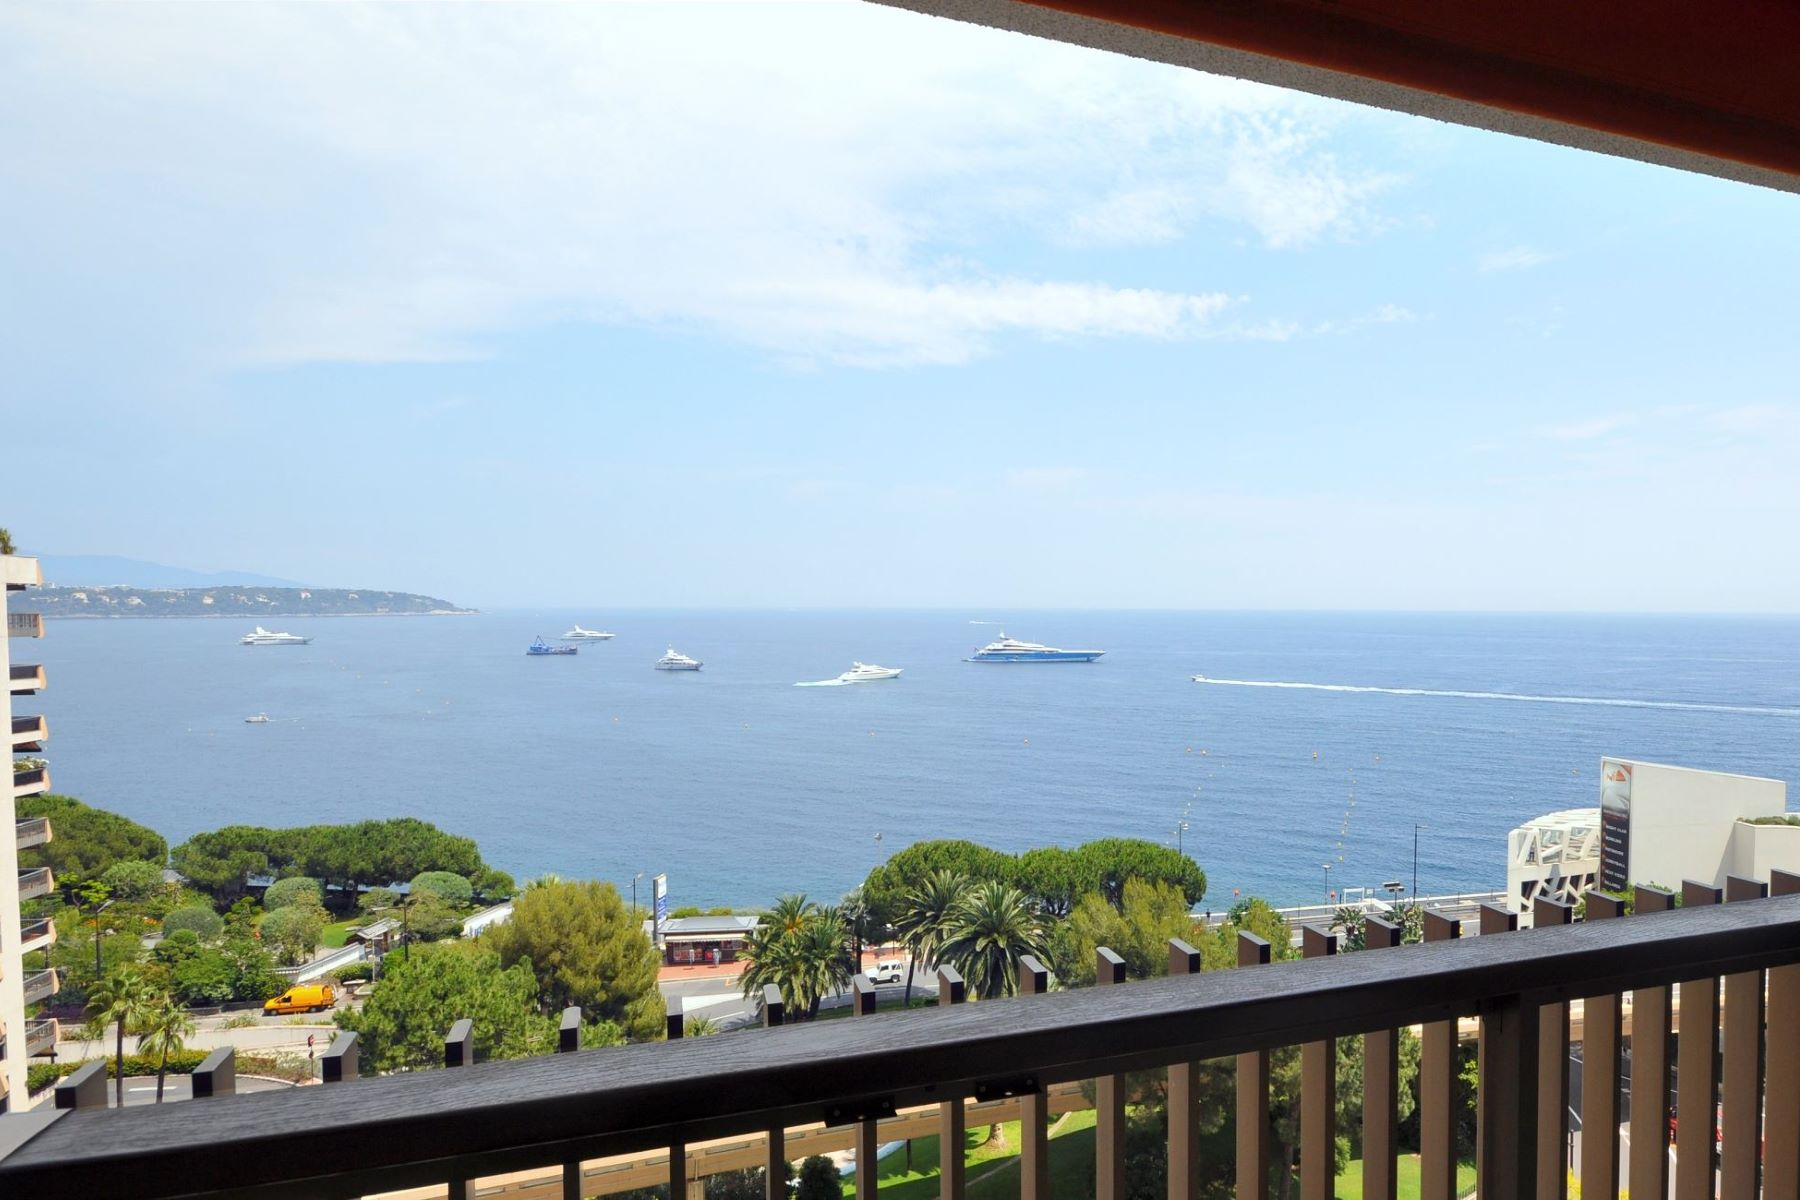 Appartement pour l Vente à Superb 2 bedroom flat, panoramic sea views. Le Mirabeau 2 Avenue des Citronniers Monaco, La Condamine, 98000 Monaco